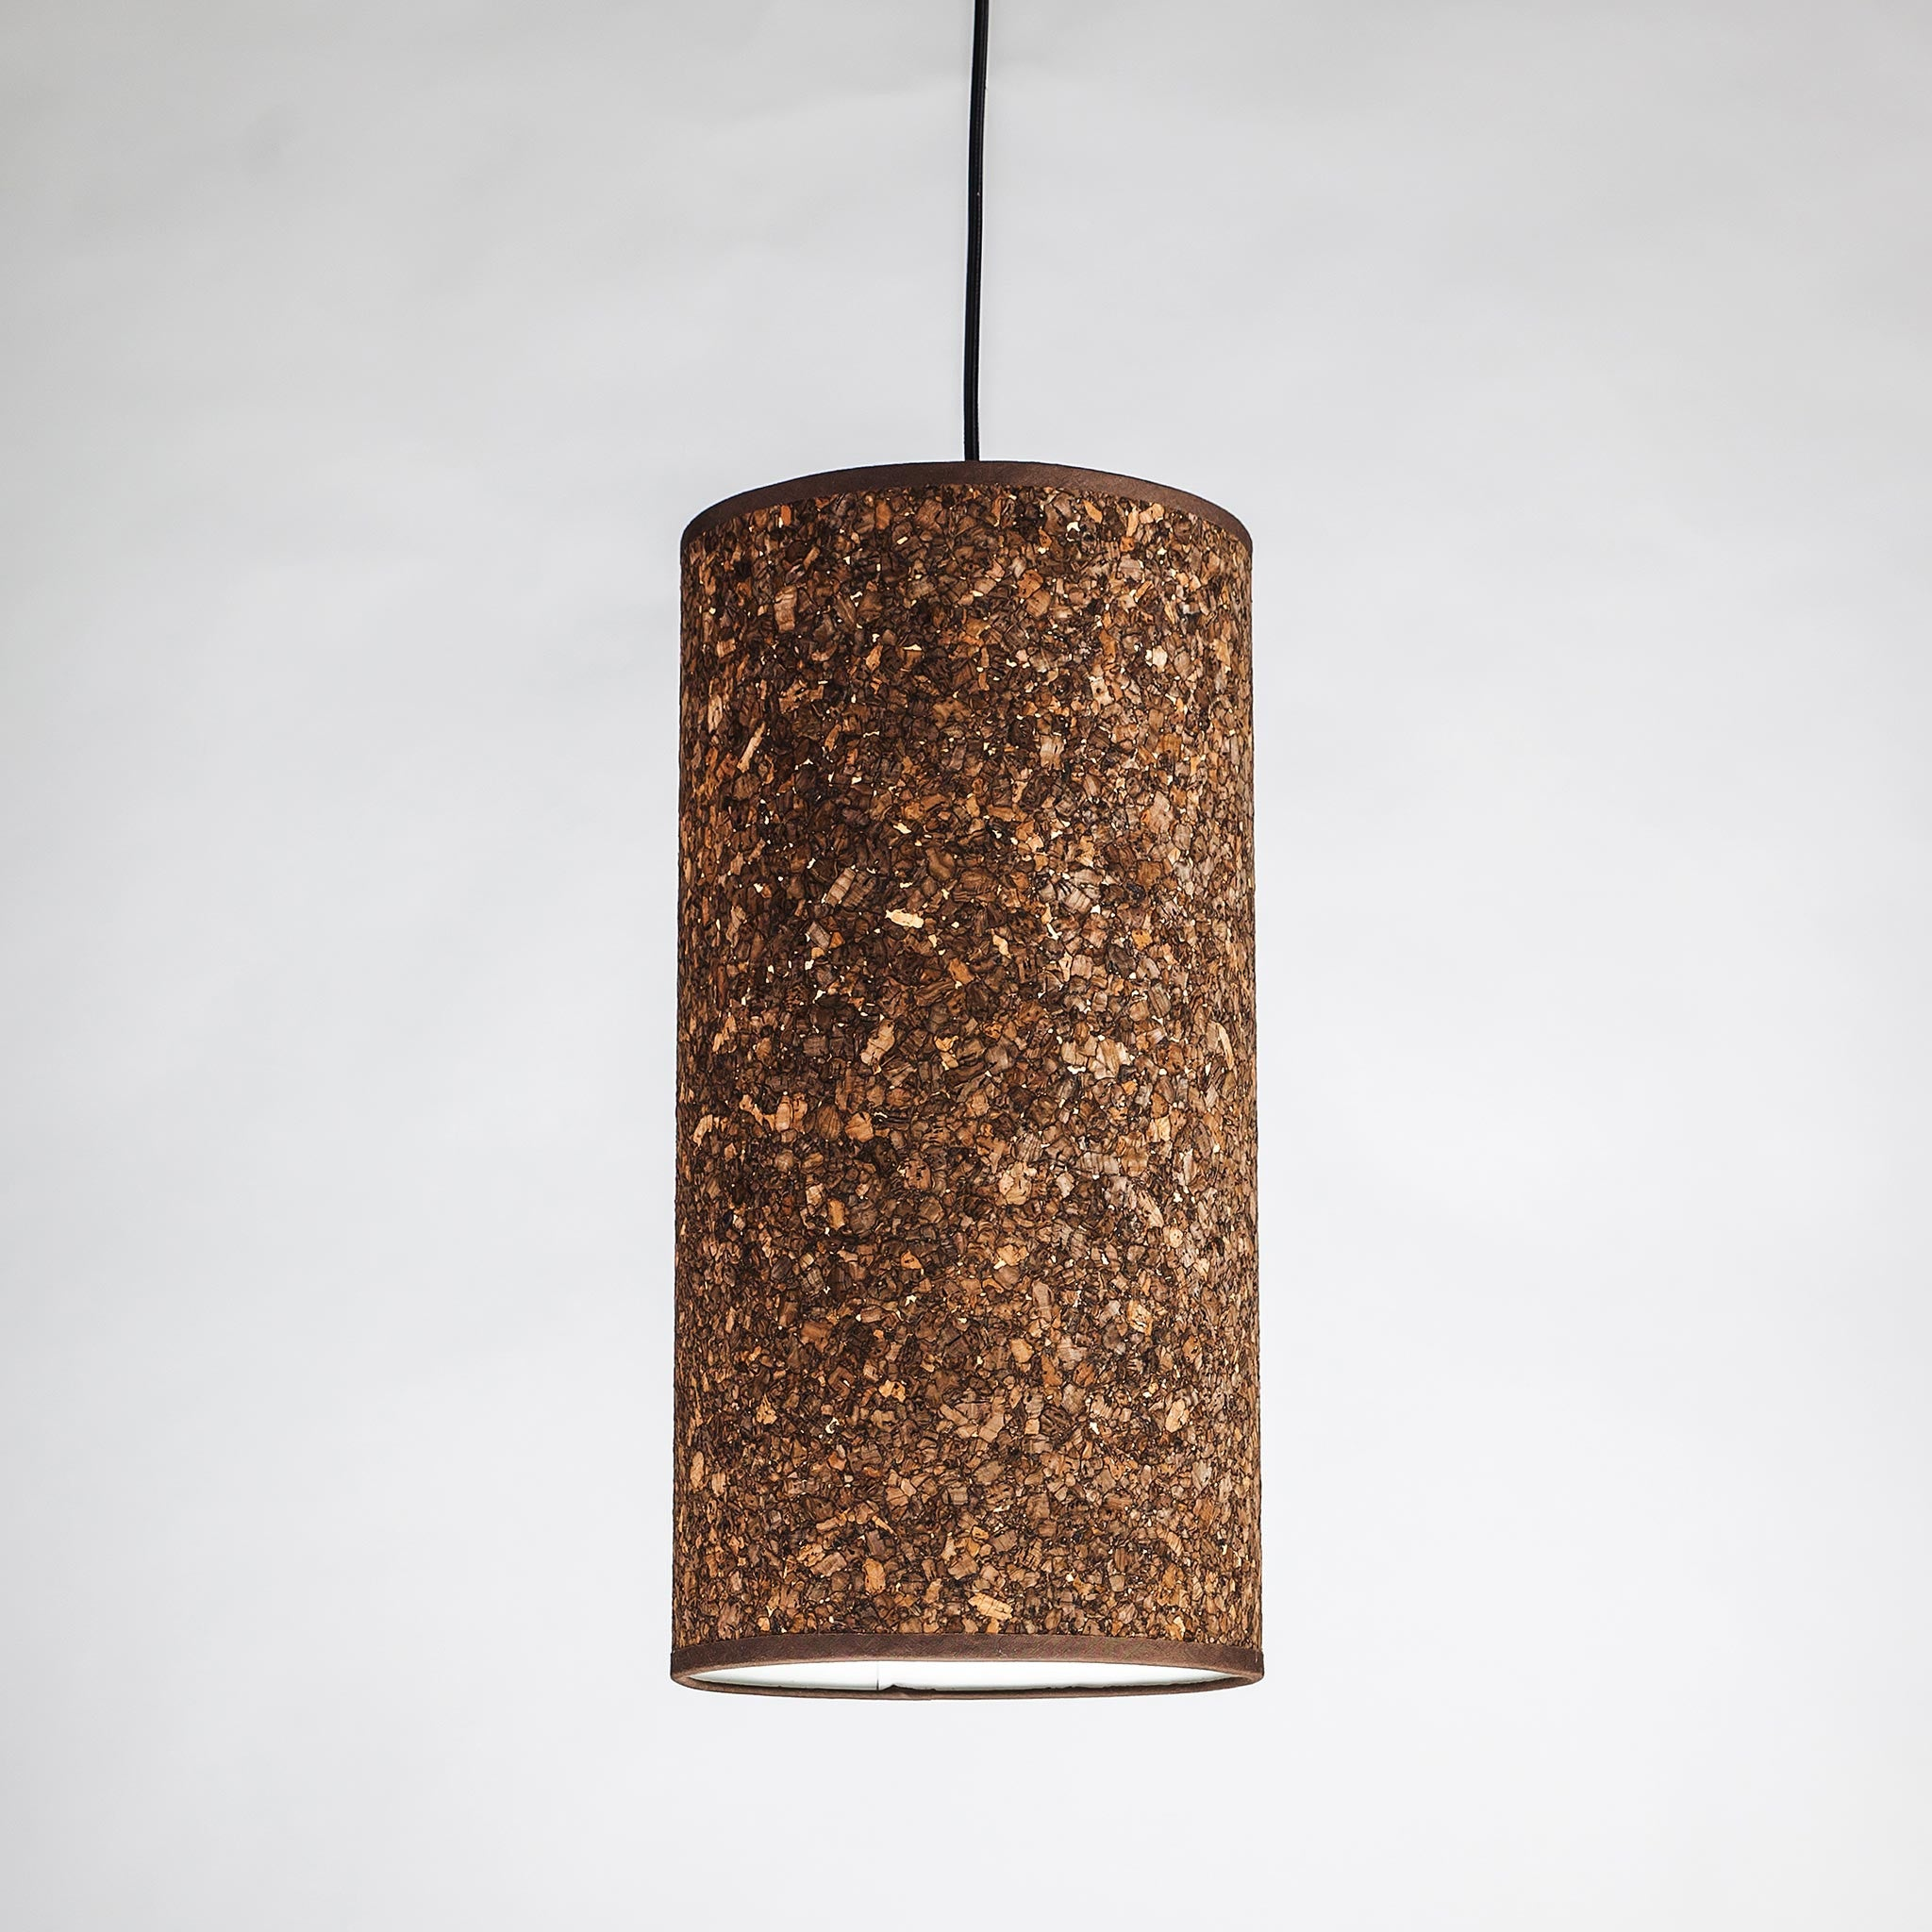 Cork smoke lamp shade small by innermost funky lamp shades cork smoke lamp shade small aloadofball Choice Image